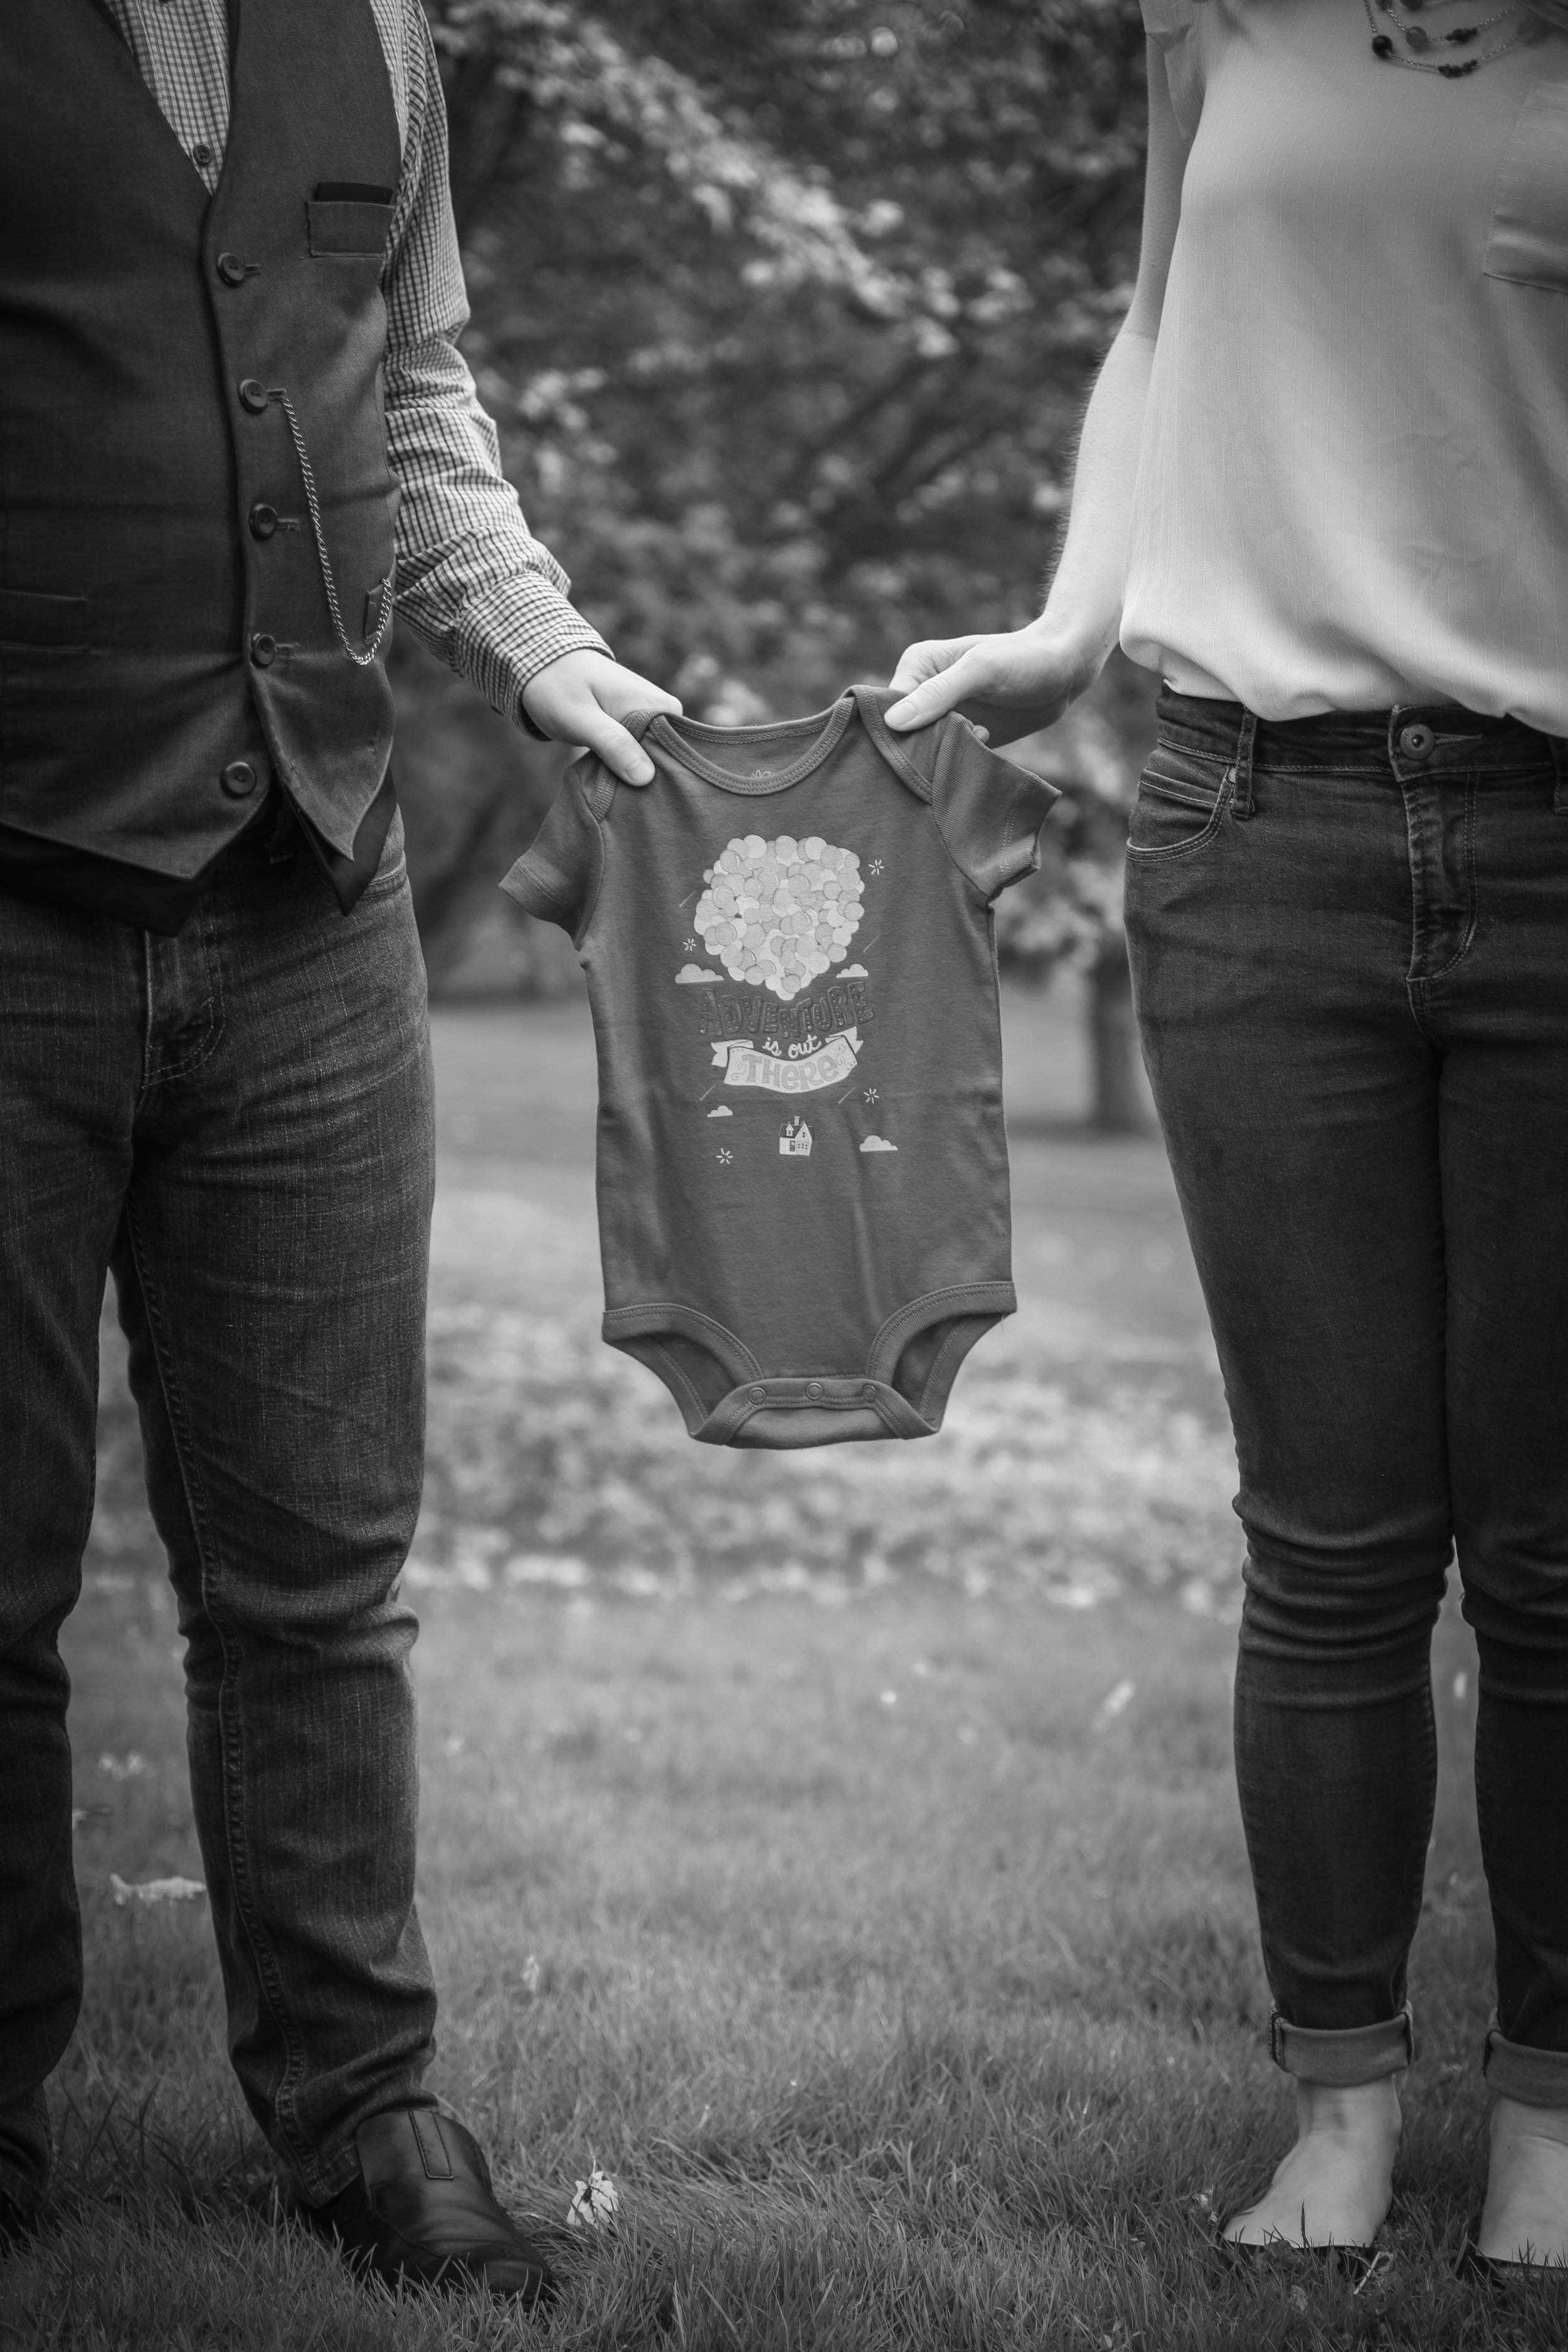 Pregnancy Announcement - Wright Park - Tacoma